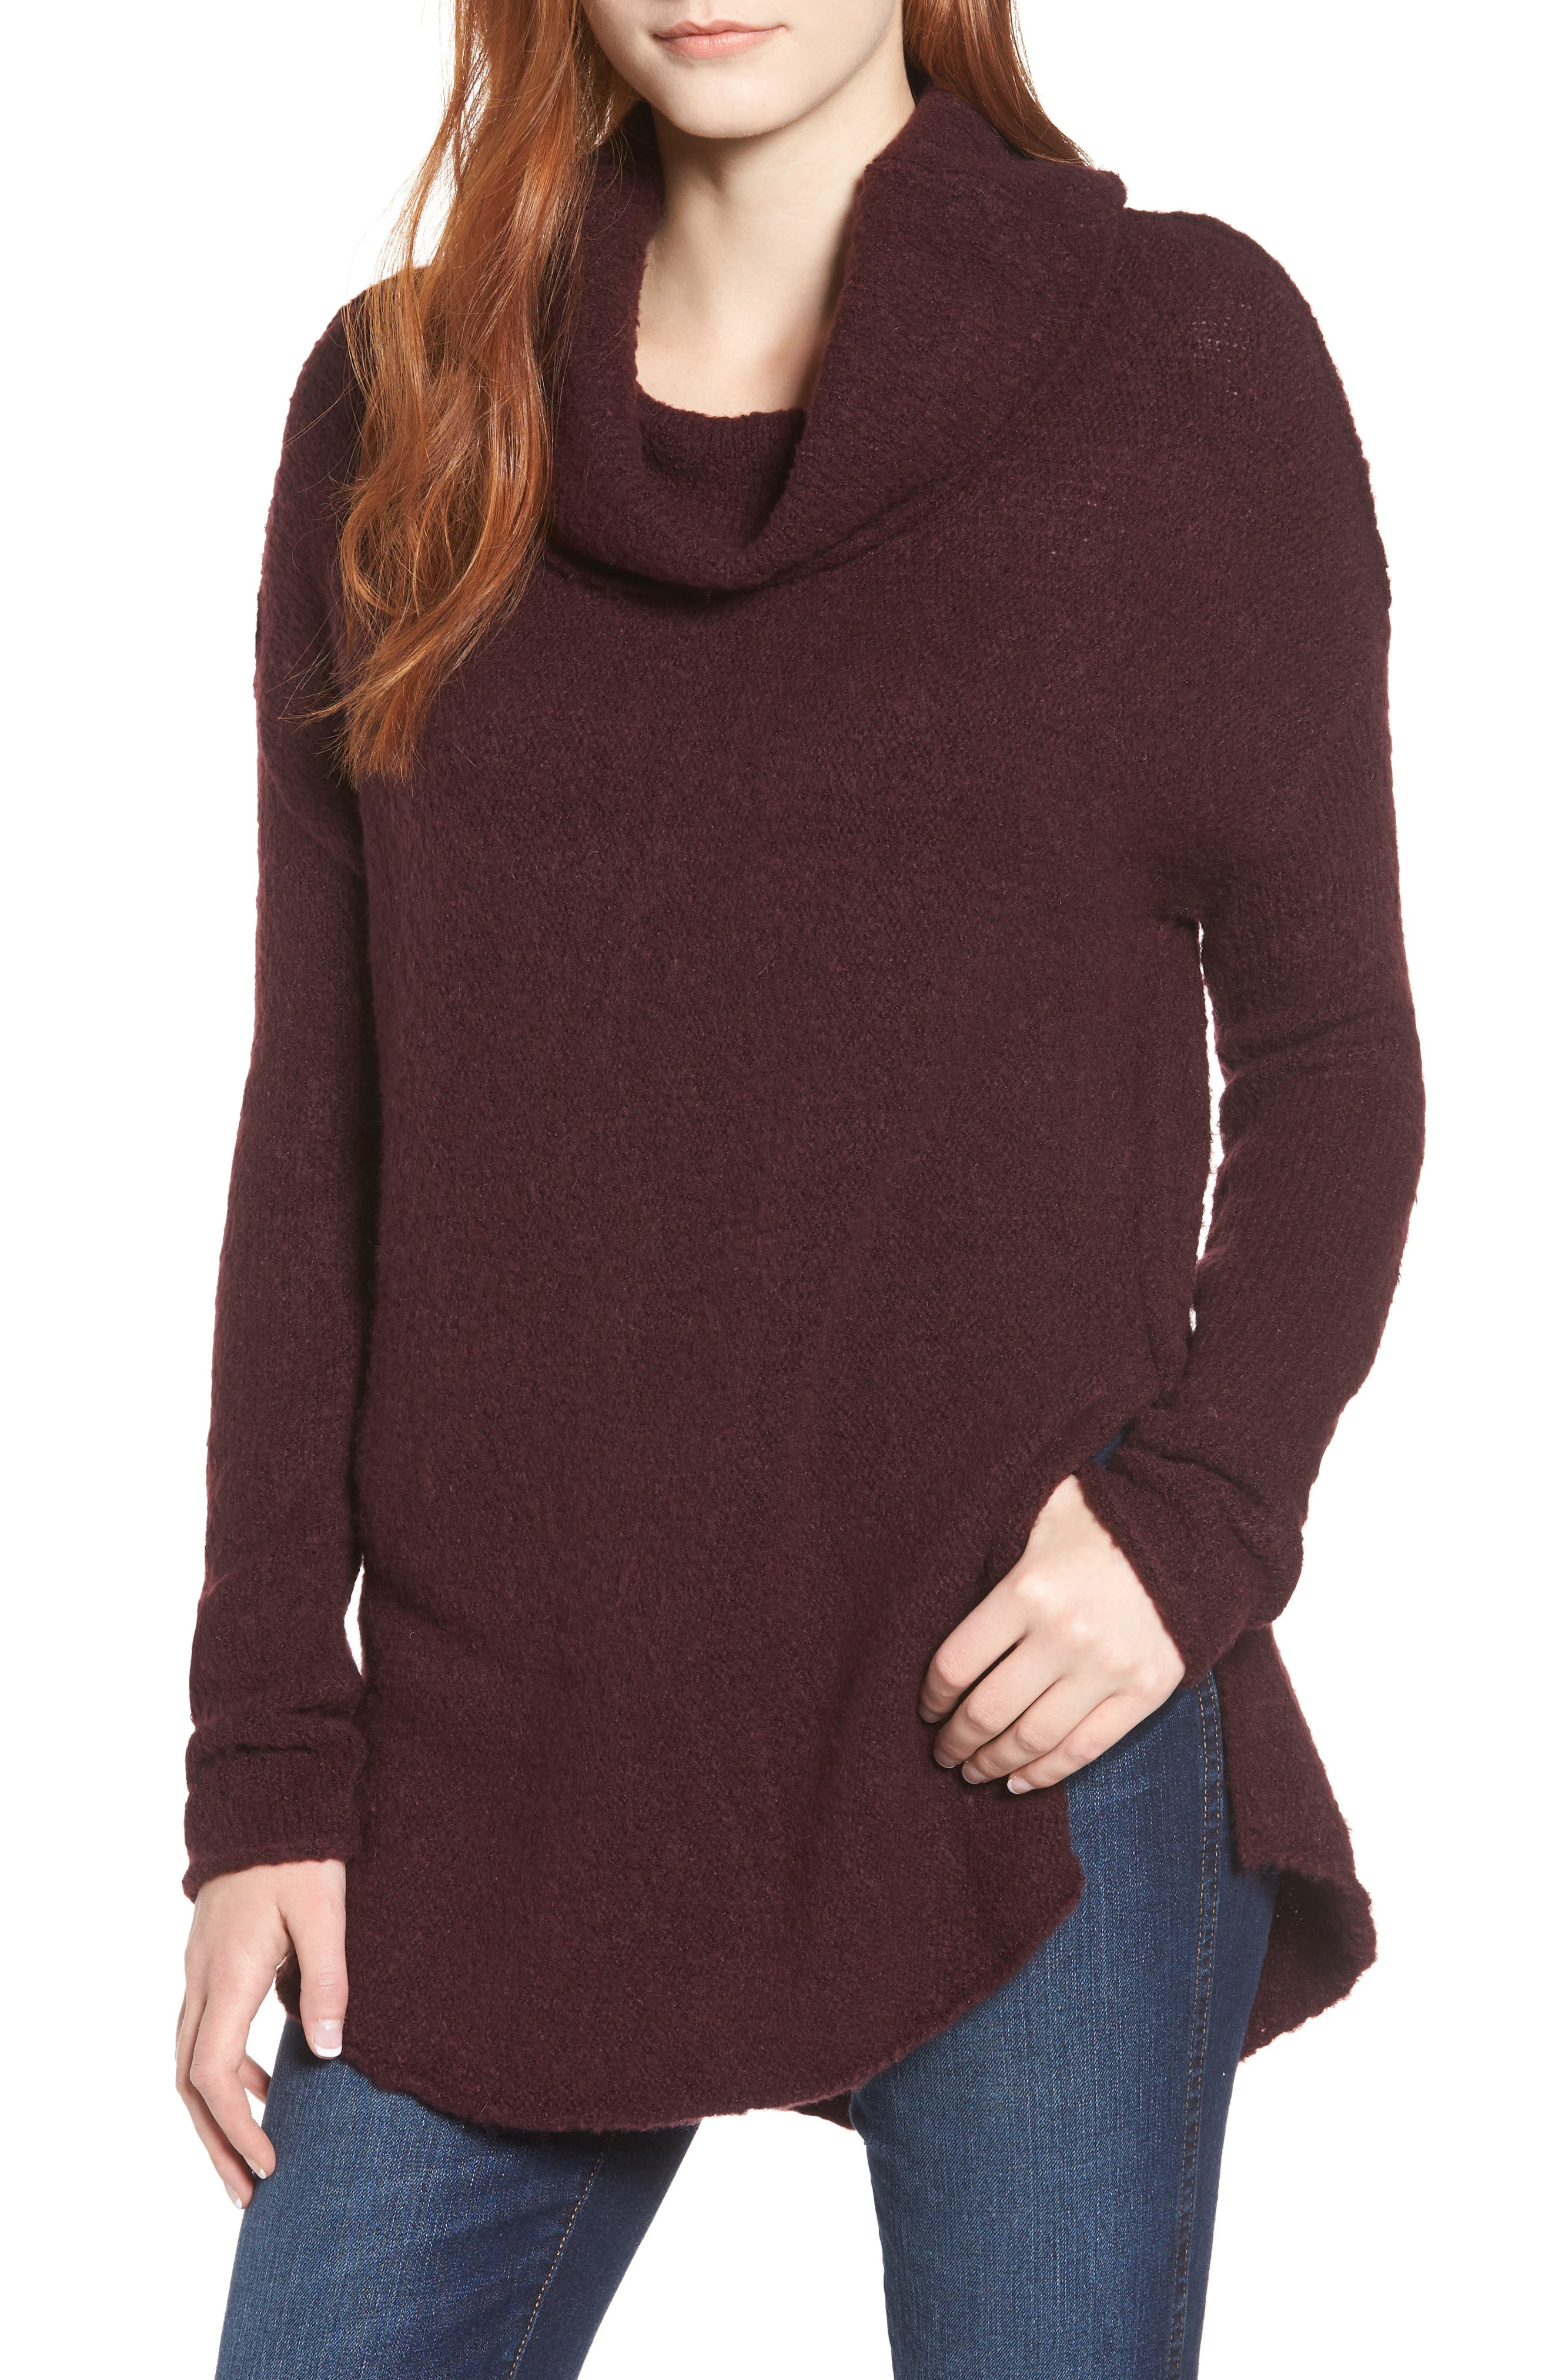 Tunic Sweater,                         Main,                         color, BURGUNDY FIG